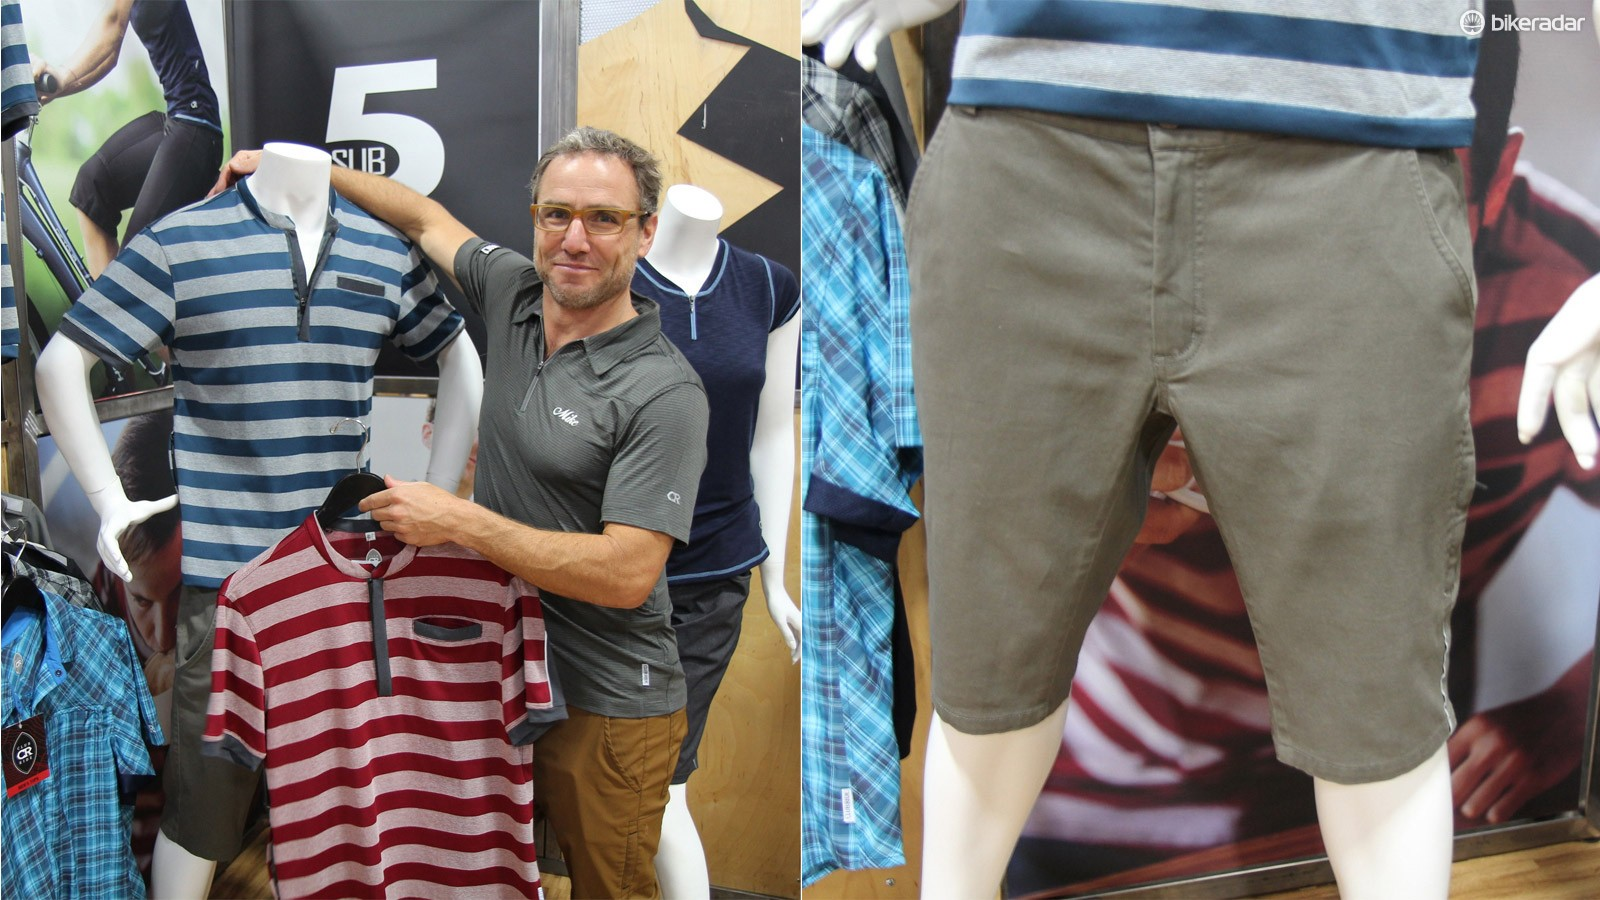 Club Ride founder Mike Herlinger shows off the Buxton poly-cotton shirts and Phantom Short